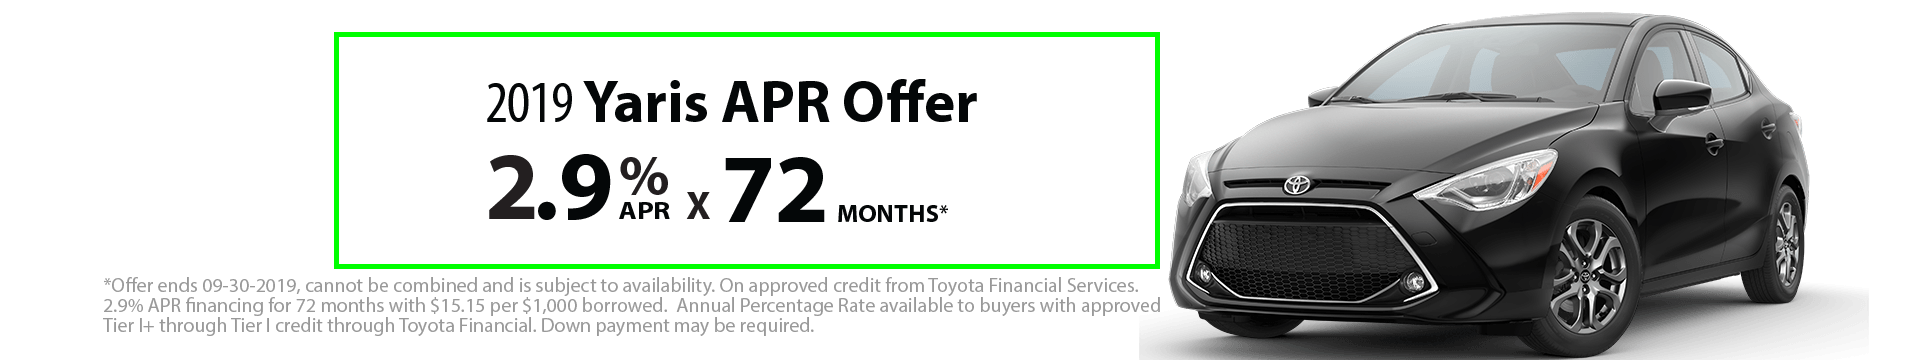 2019 Yaris 2.9% x 72 month Special Finance Offer